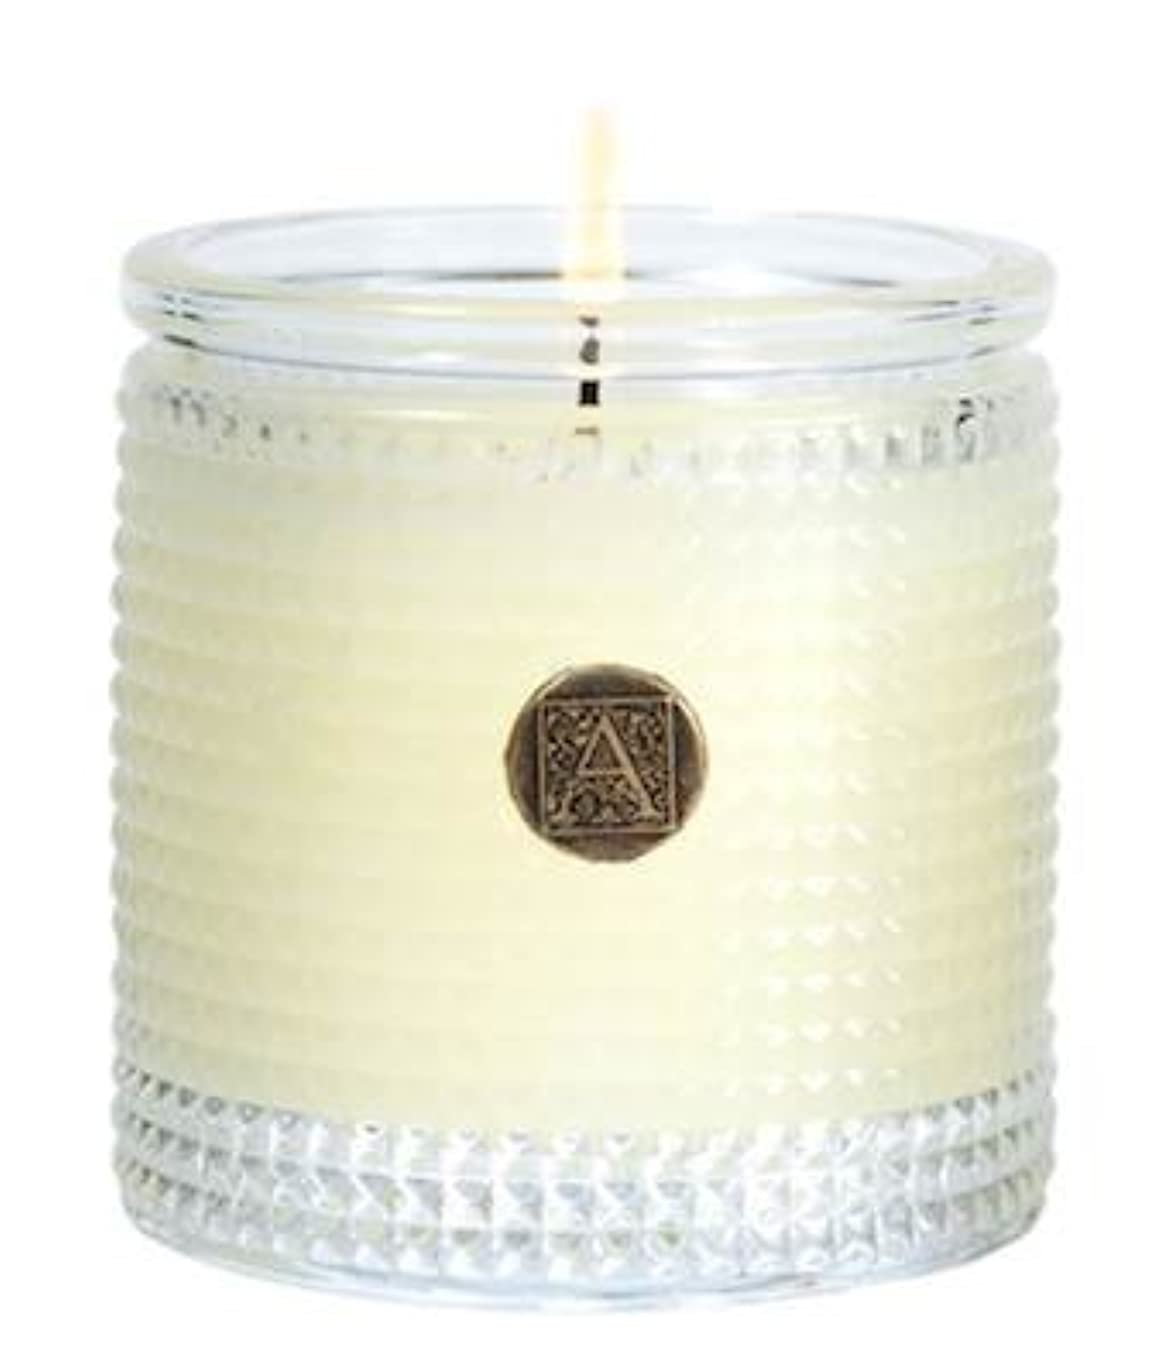 Aromatique 5.5 Oz Candle inオレンジand Evergreen